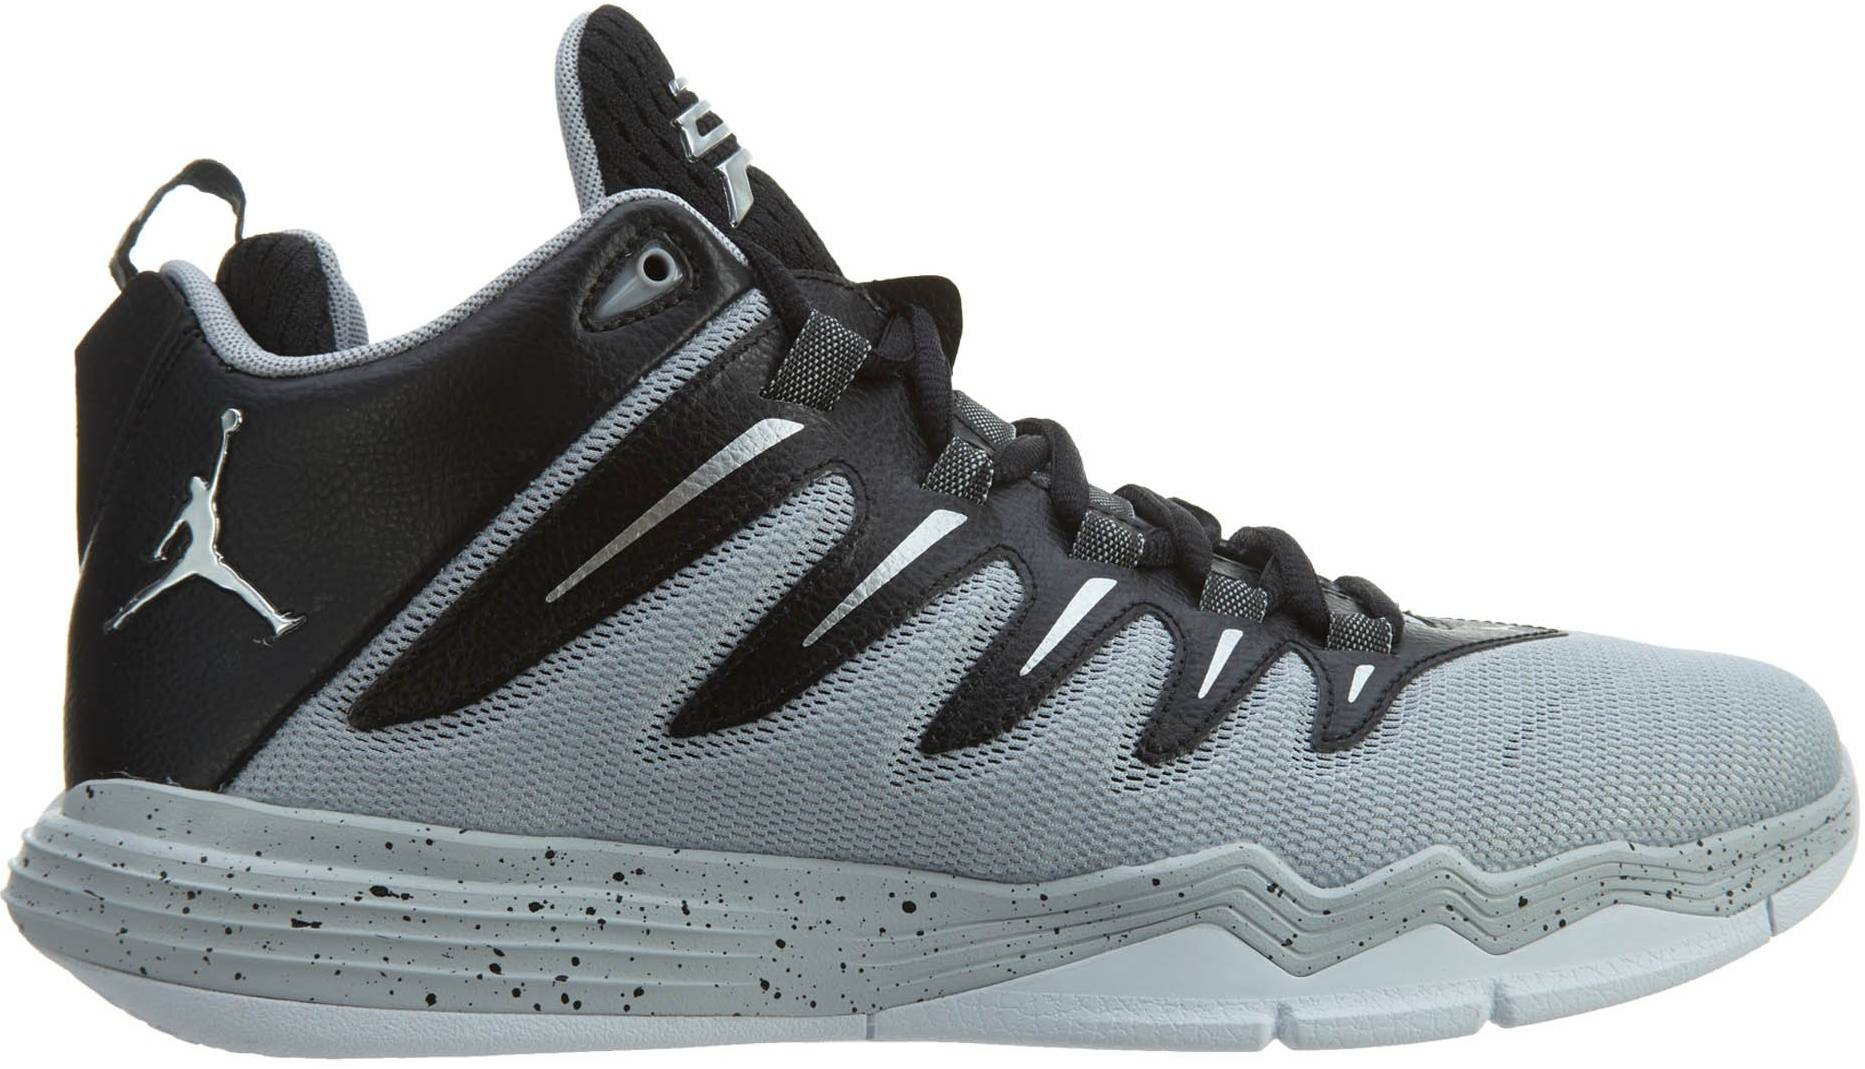 buy cp3 shoes off 73% - www.usushimd.com